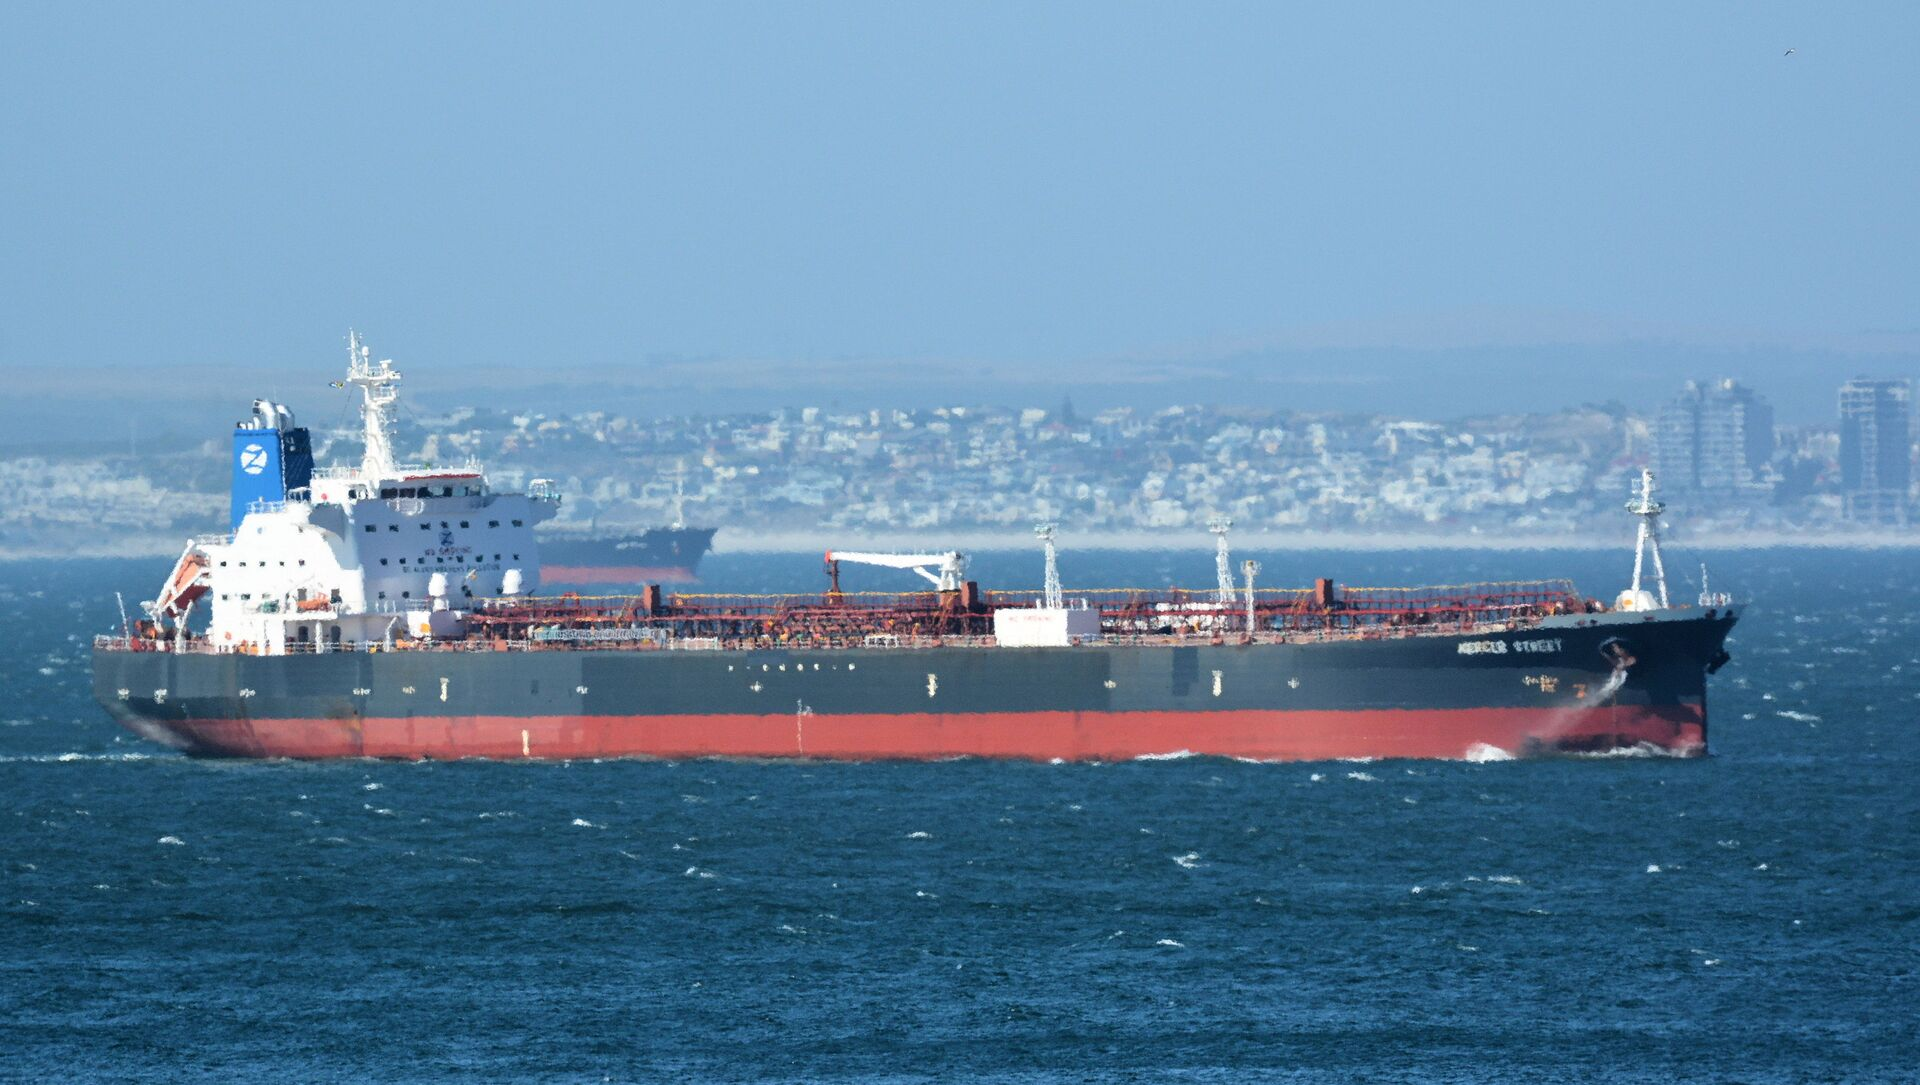 The Mercer Street, a Japanese-owned Liberian-flagged tanker managed by Israeli-owned Zodiac Maritime that was attacked off Oman coast as seen in Cape Town, South Africa, December 31, 2015  in this picture obtained from ship tracker website, MarineTraffic.com. Picture taken December 31, 2015.  Johan Victor/Handout via REUTERS THIS IMAGE HAS BEEN SUPPLIED BY A THIRD PARTY. MANDATORY CREDIT. NO RESALES. NO ARCHIVES. - Sputnik International, 1920, 02.08.2021